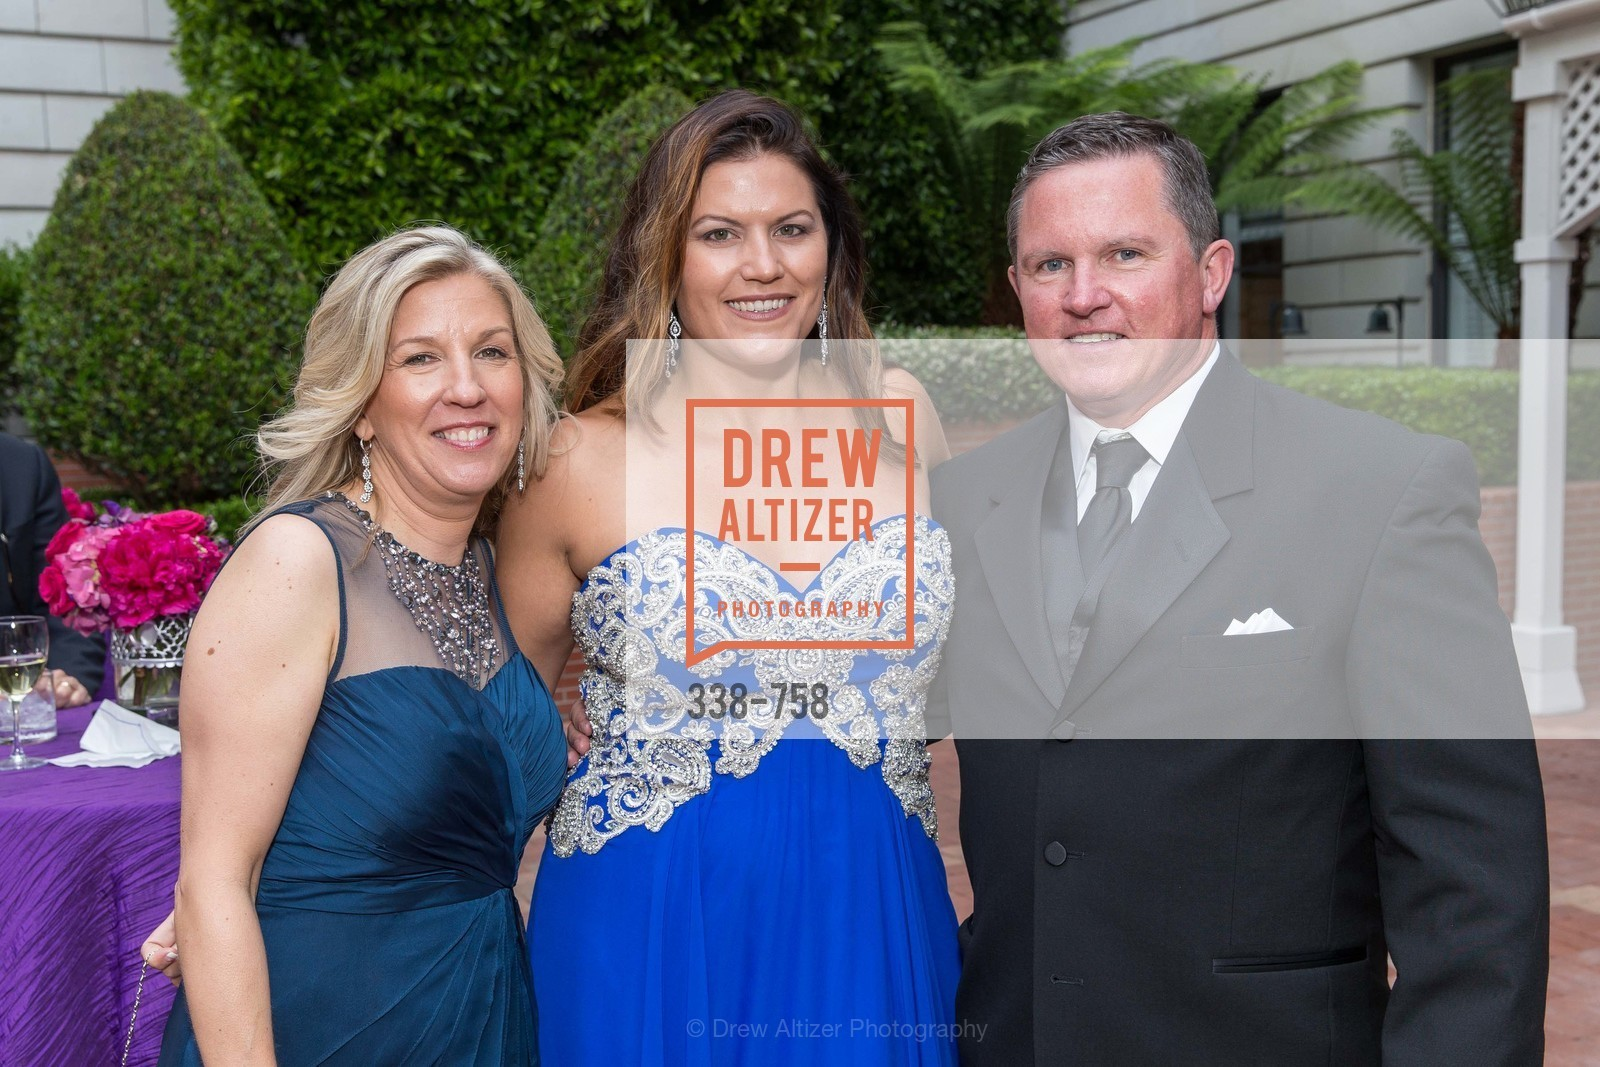 Linda Molnar, Heidi Peterson, Sean McGinn, JUVENILE DIABETES RESEARCH FOUNDATION  Hope Gala, US, May 30th, 2015,Drew Altizer, Drew Altizer Photography, full-service event agency, private events, San Francisco photographer, photographer California